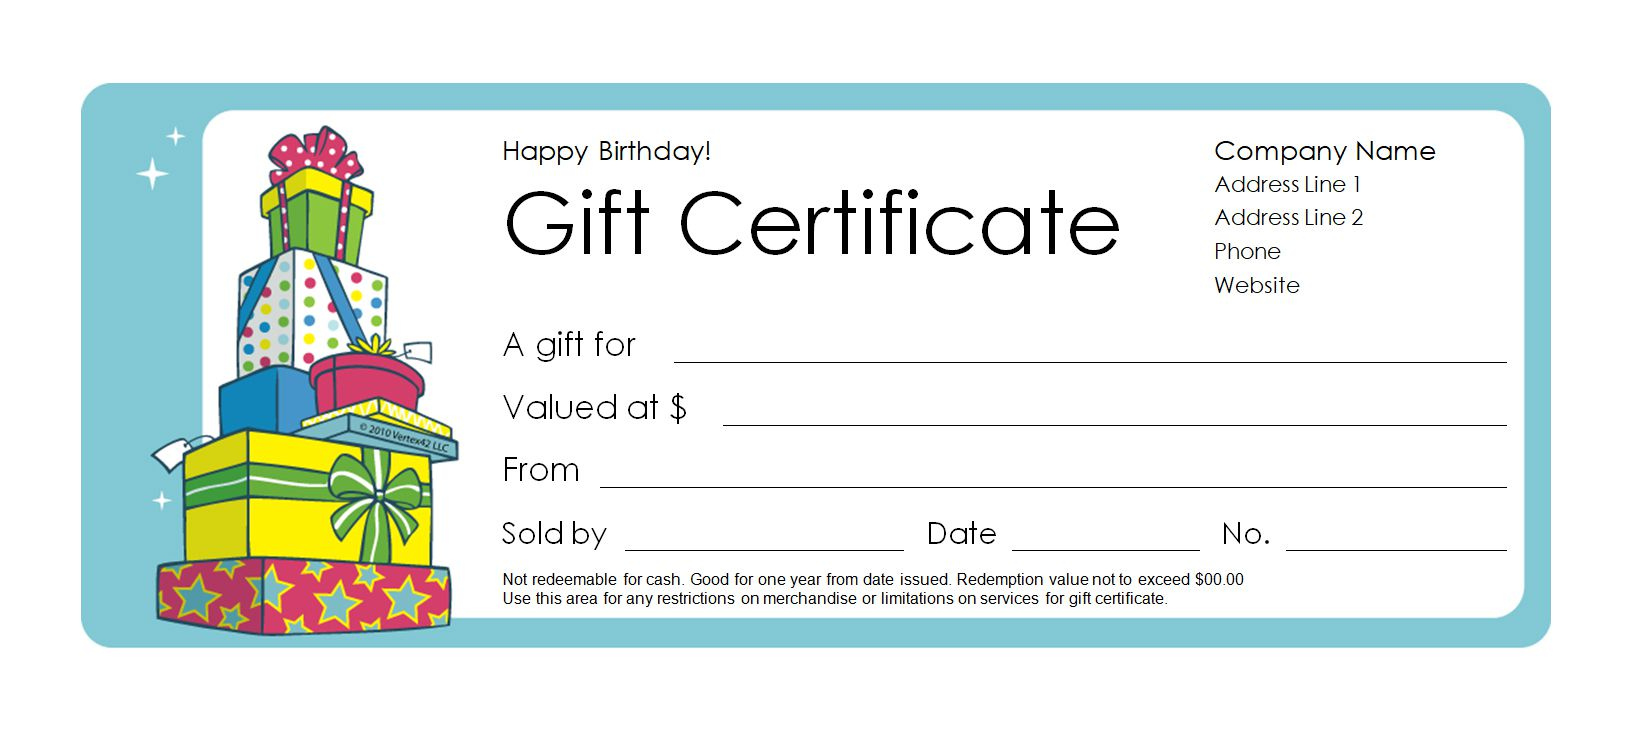 173 free gift certificate templates you can customize solutioingenieria Images